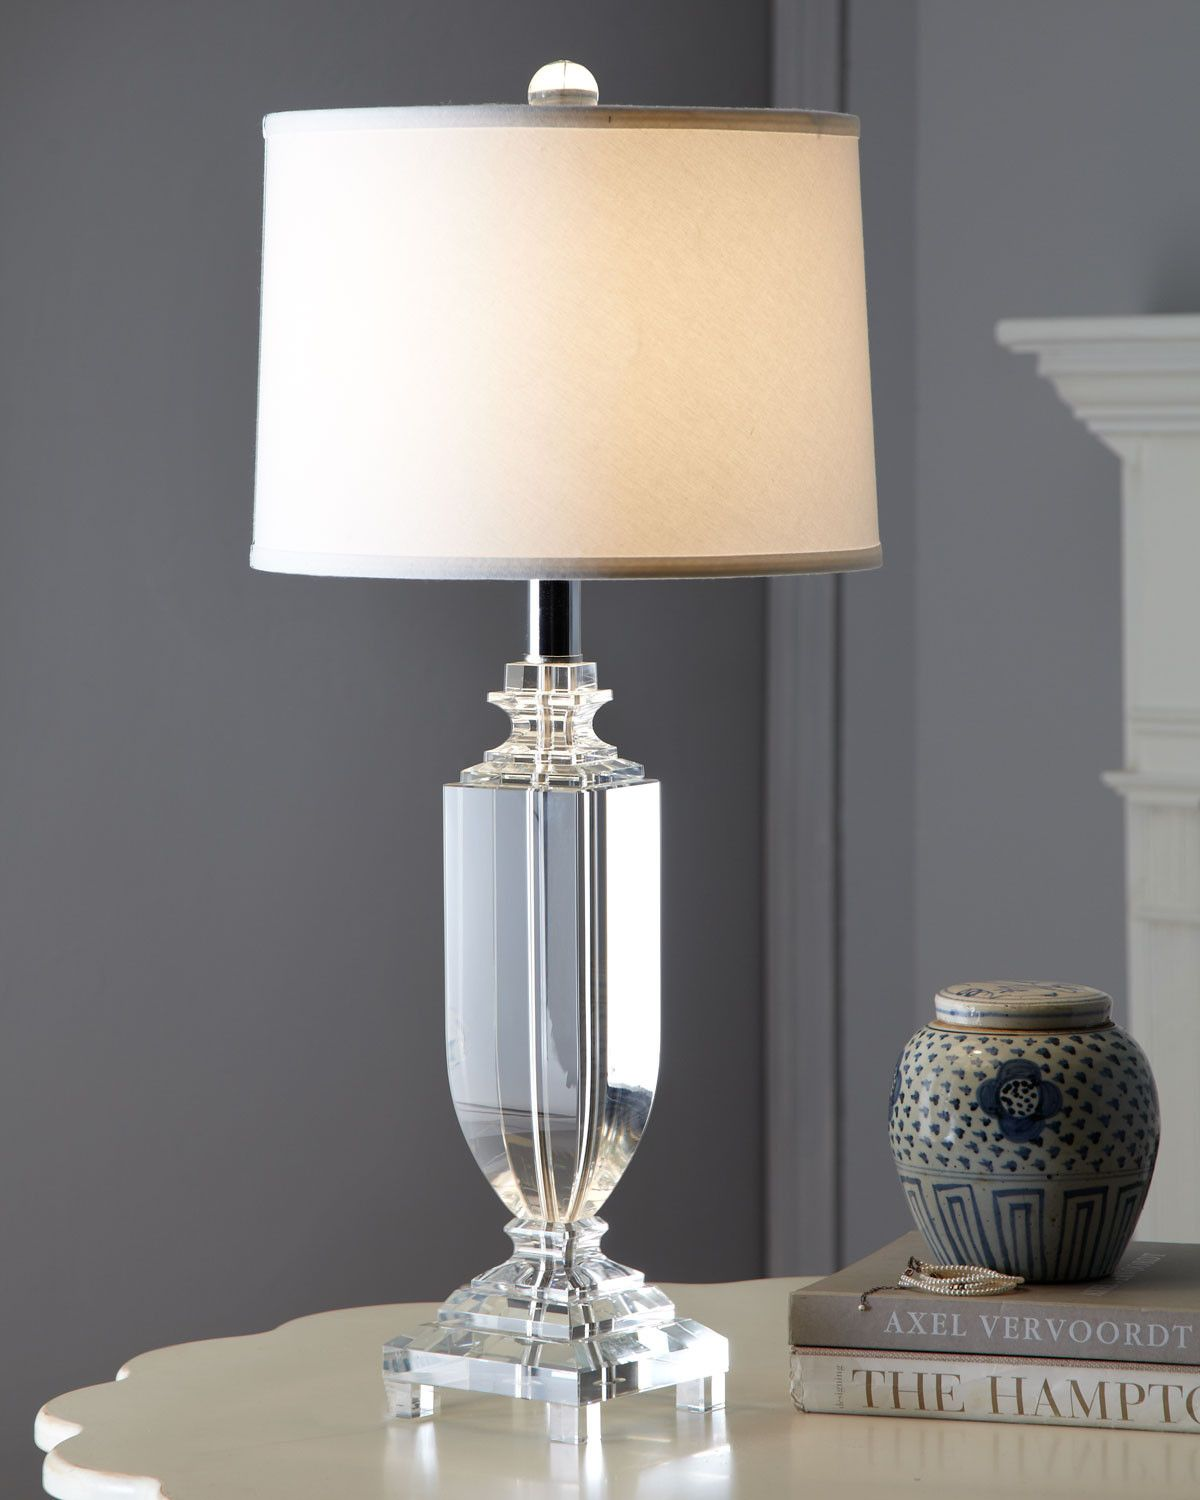 Lamp Table Ideas bedside table lamps. | where the heart is. | pinterest | crystals